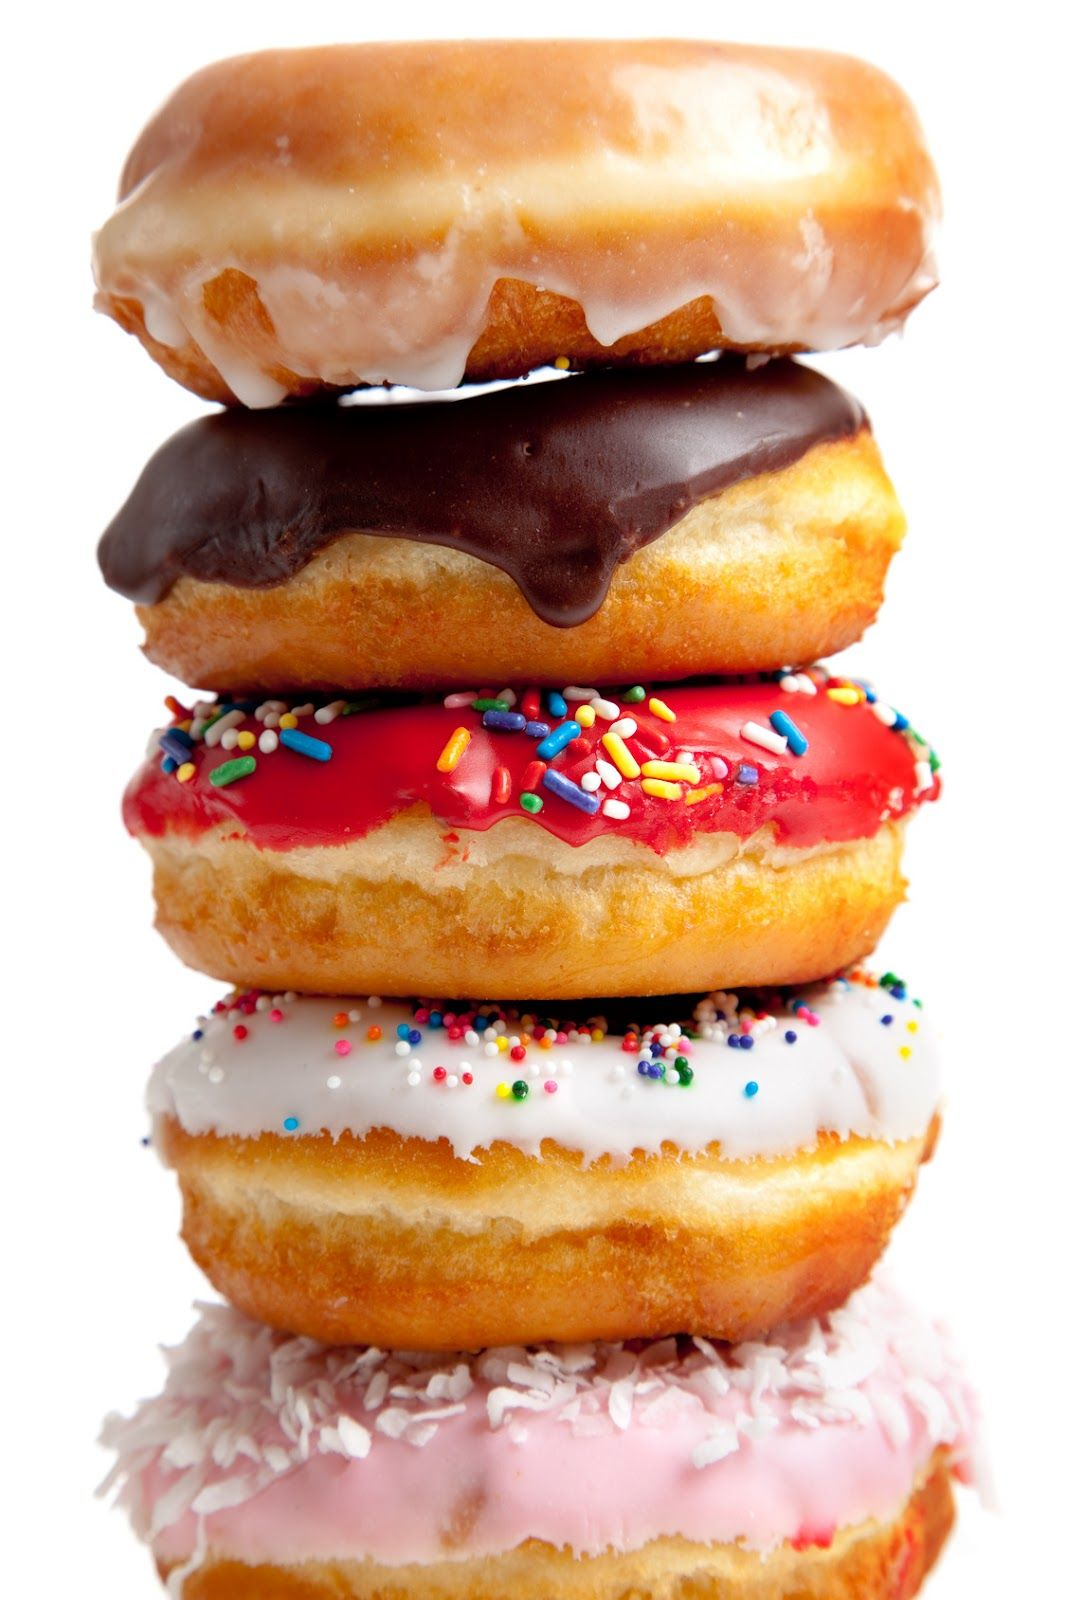 Populaire Donuts fast-food Photo | G1 Food Resources Unit | Pinterest TR26